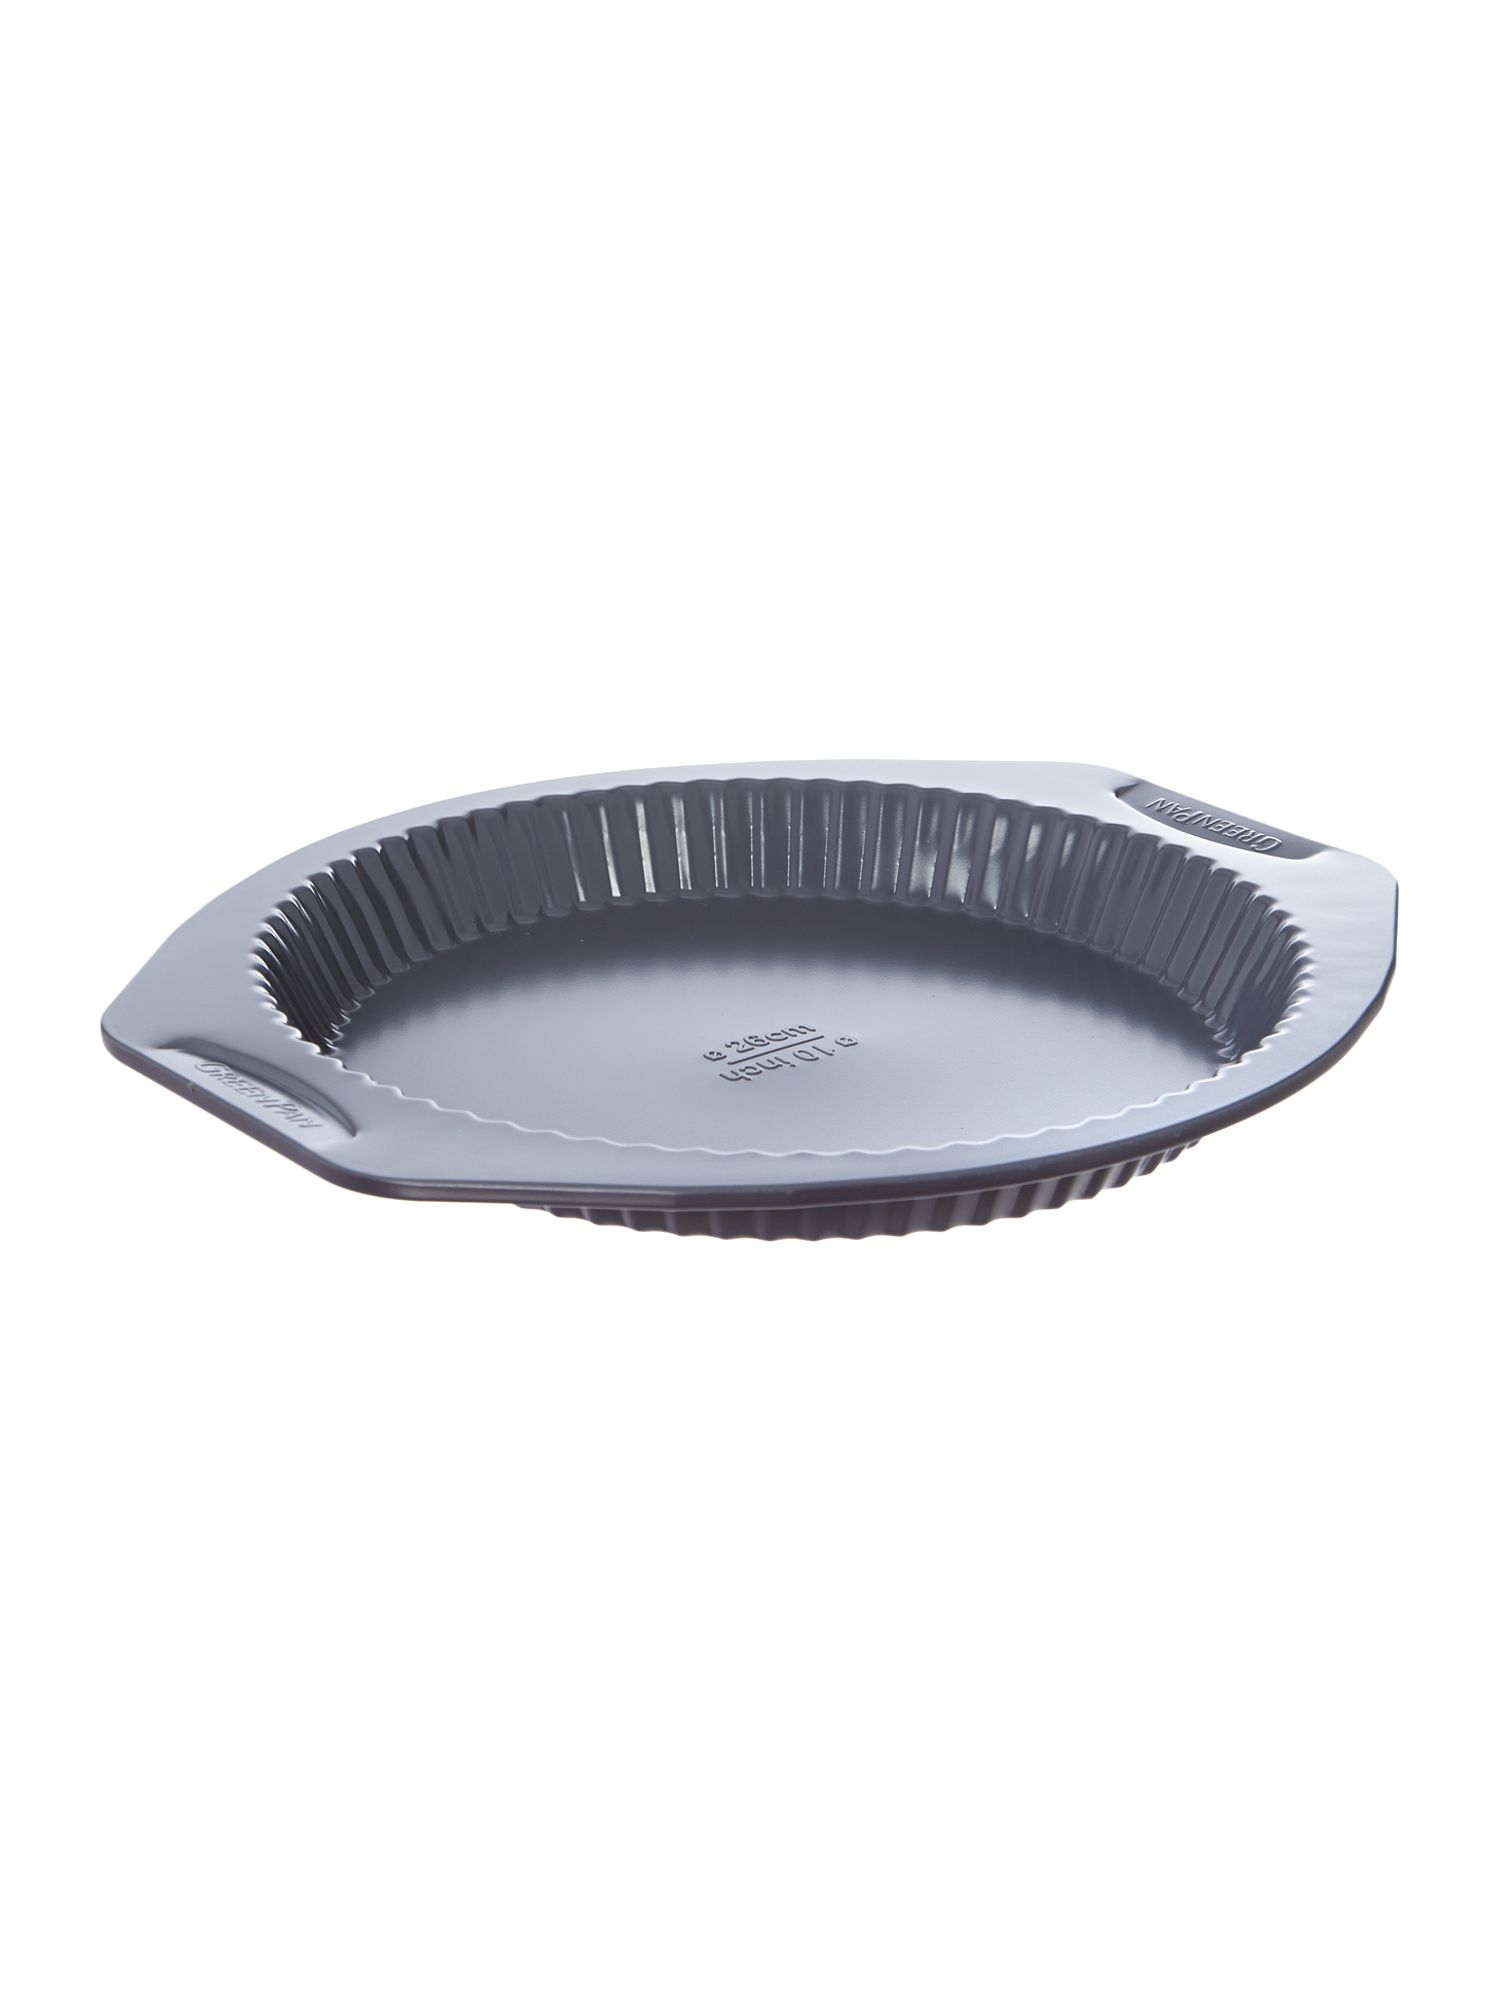 Boston fluted quiche / flan tin